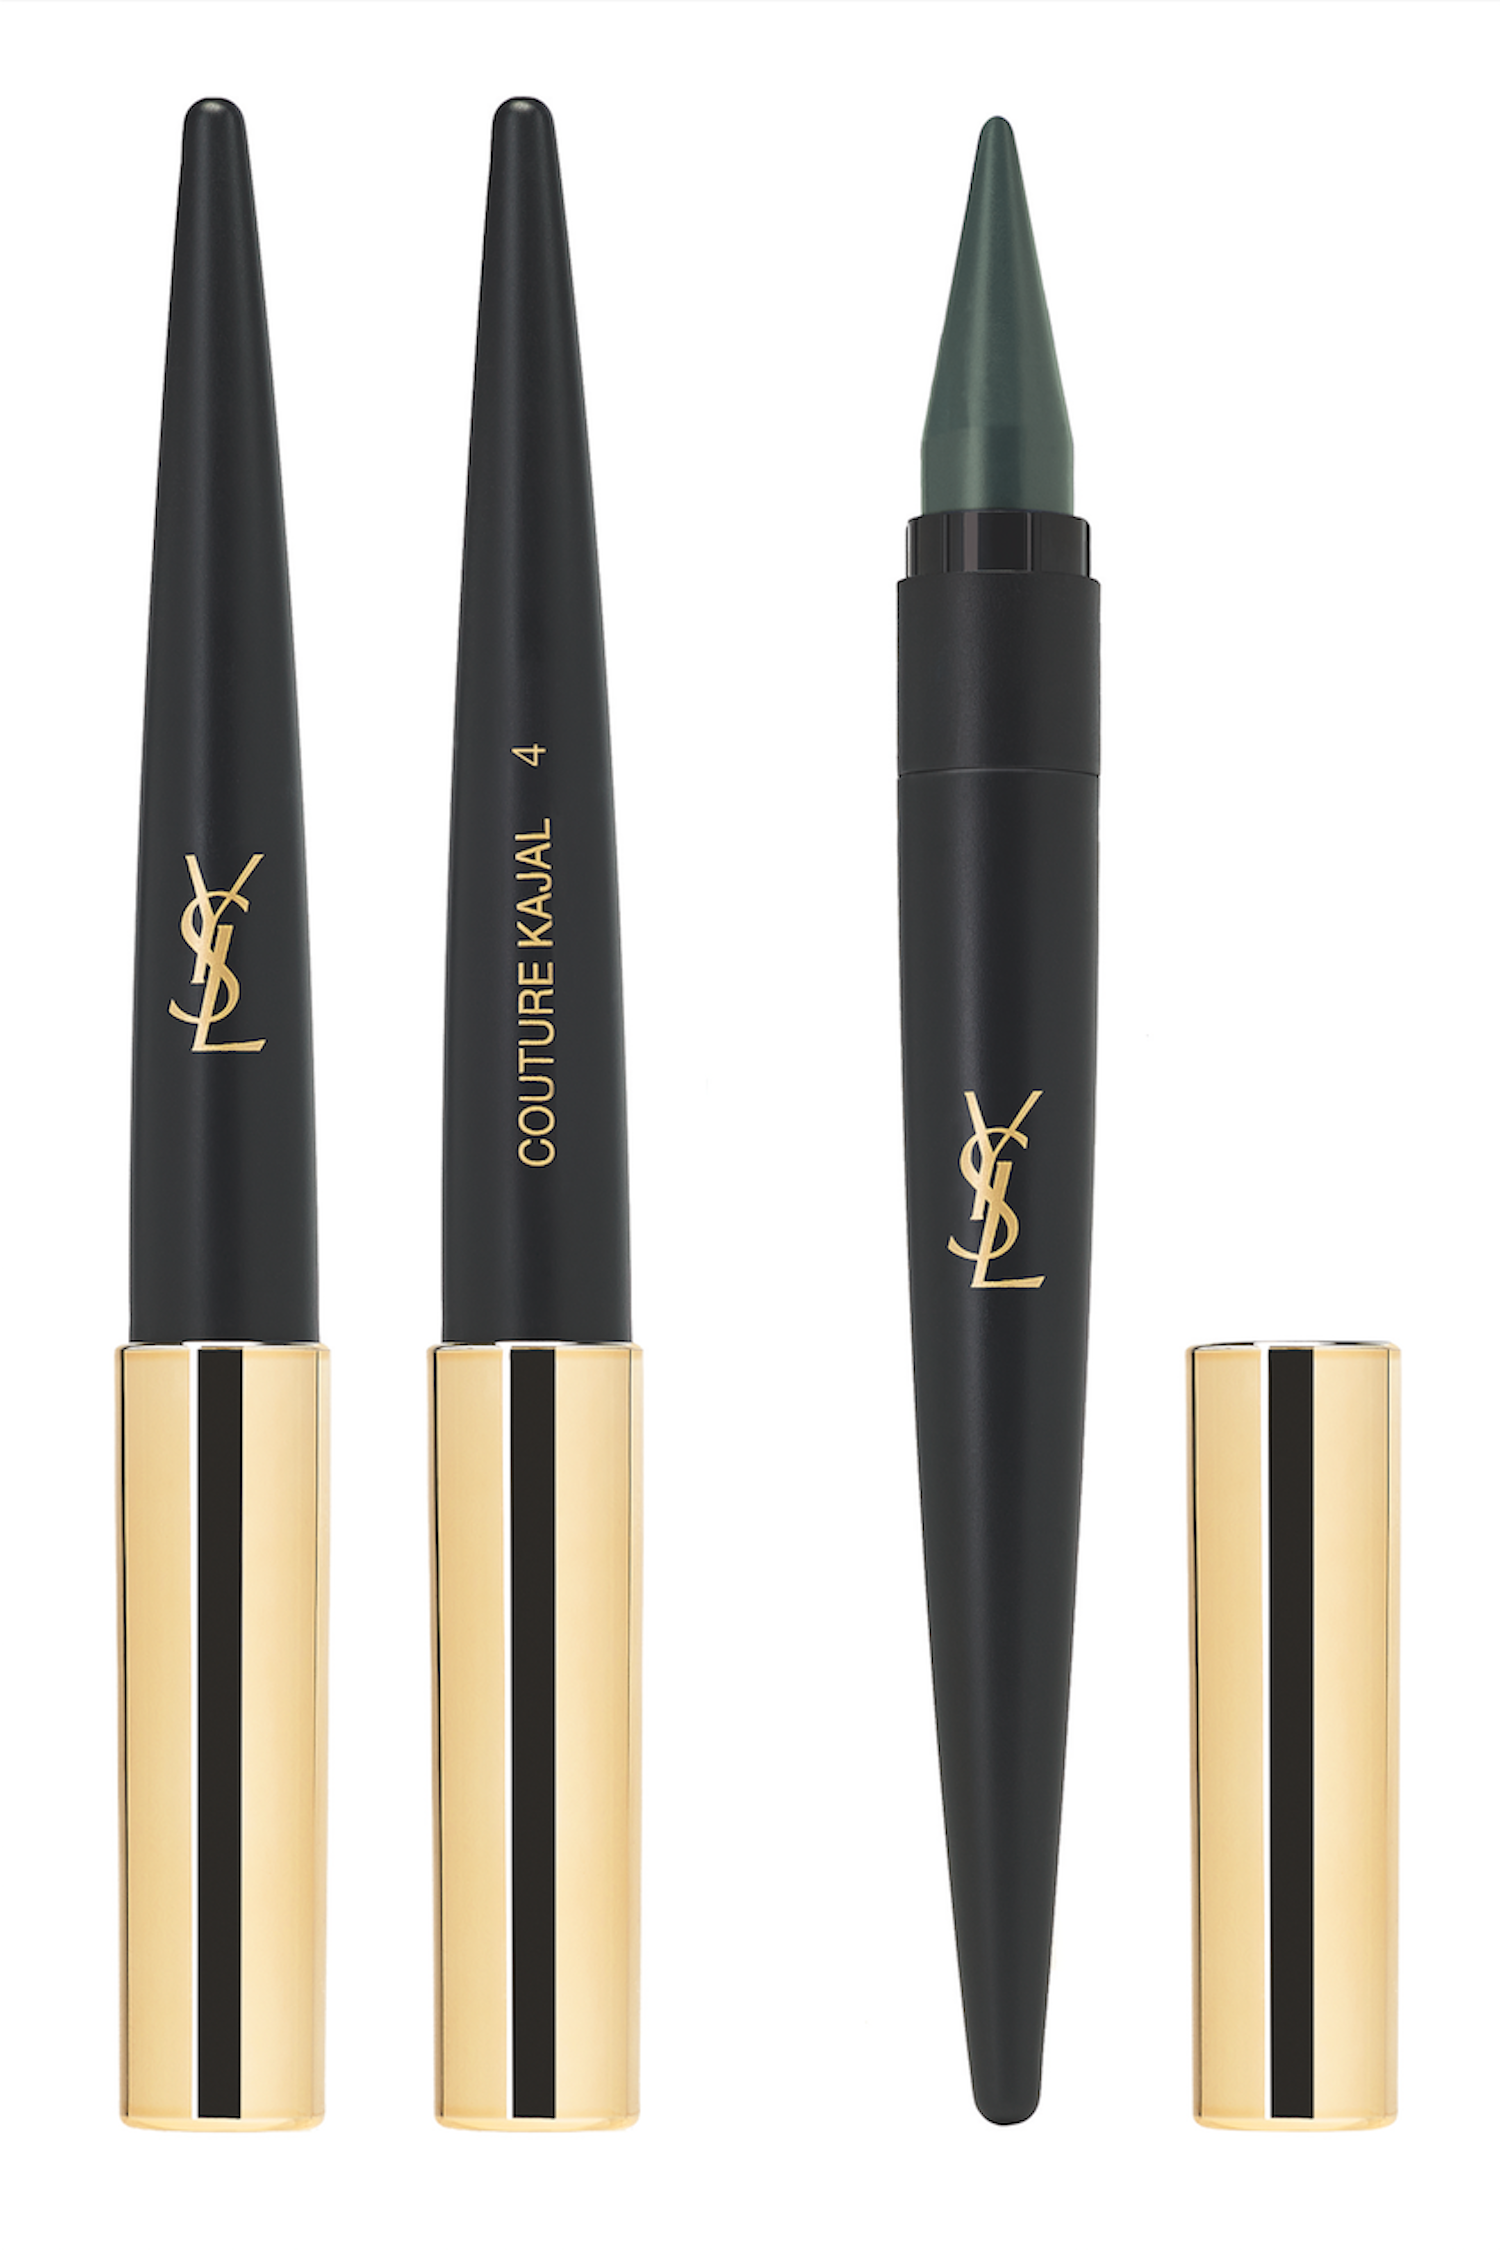 "<p>Simply twist up the tip on this creamy, ultra-pigmented 3-in-1 kohl crayon — choose from ""Noir Ardent"" (black), ""Bleu Cobalt"" (navy), ""Bleu Petrole"" (vibrant blue), or ""Vert Anglais"" (hunter green) — to define your inner lash lines, create a super-fine flick along your upper lashes, or pull off a full-on smoky eye in seconds. </p><p> <em><a href=""http://www.yslbeautyus.com/couture-kajal-eye-pencil/18925YSL.html?cgid=fall-look-2015&dwvar_18925YSL_color=Noir%20Ardent#lid=1&lcat=fall-look-2015&start=3&cgid=fall-look-2015"" target=""_blank"">Yves Saint Laurent Couture Kajal Eye Pencil</a>, YVES SAINT LAURENT (Available at YSL </em><em>Beauty</em><em>), $35</em></p>"